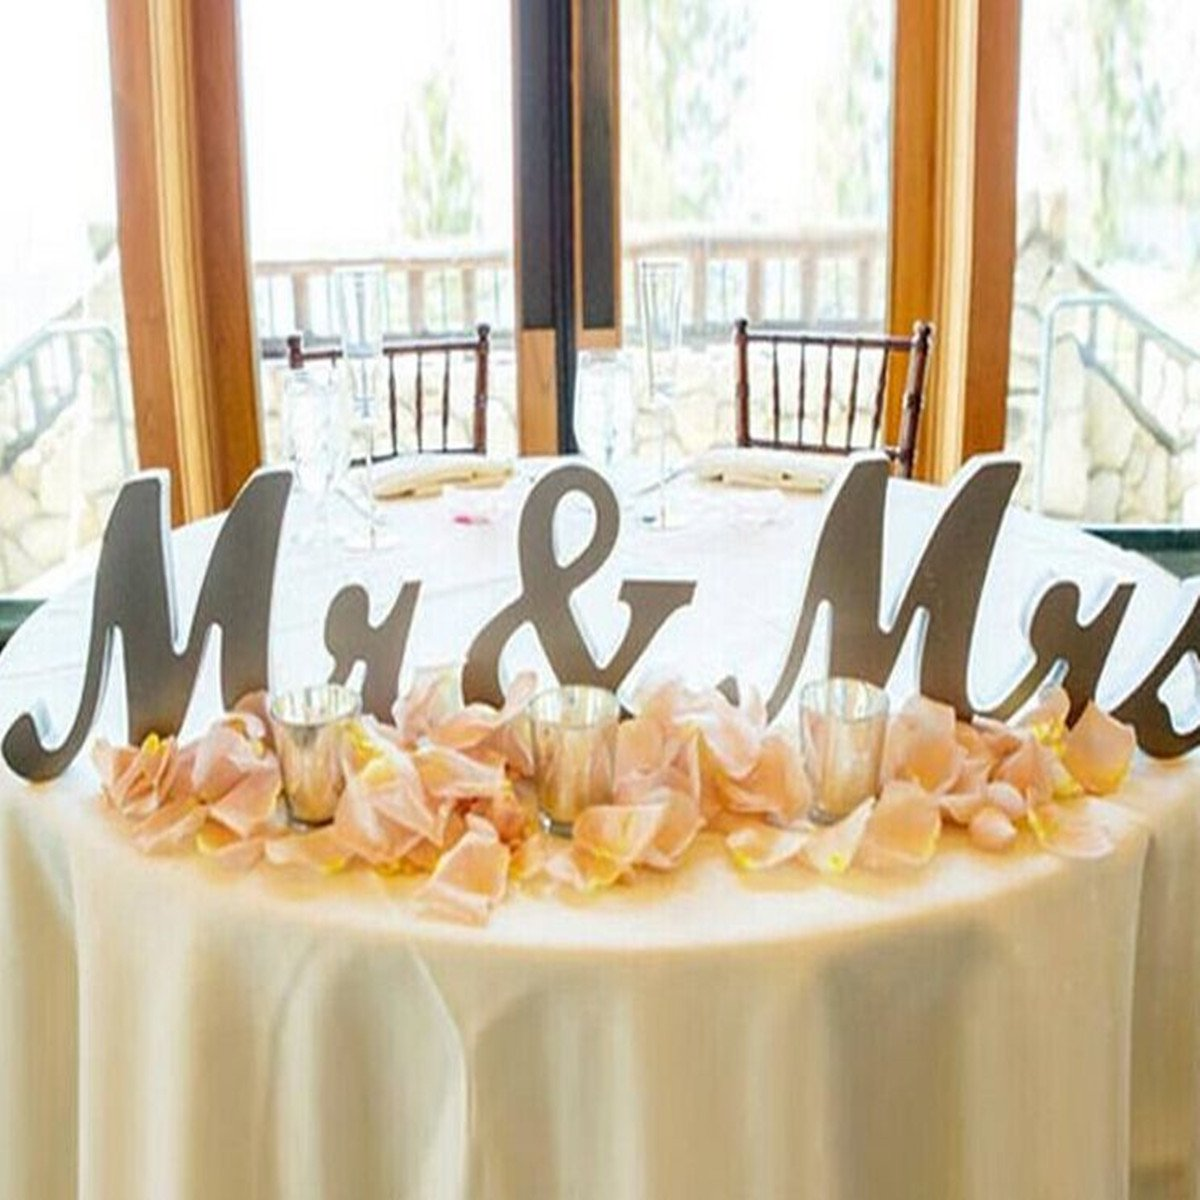 Cool Mr And Mrs Sign Wedding Table Decorations Mr And Mrs Letters Decorative Letters For Wedding Photo Props Party Banner Decorationwedding Shower Gift Interior Design Ideas Apansoteloinfo